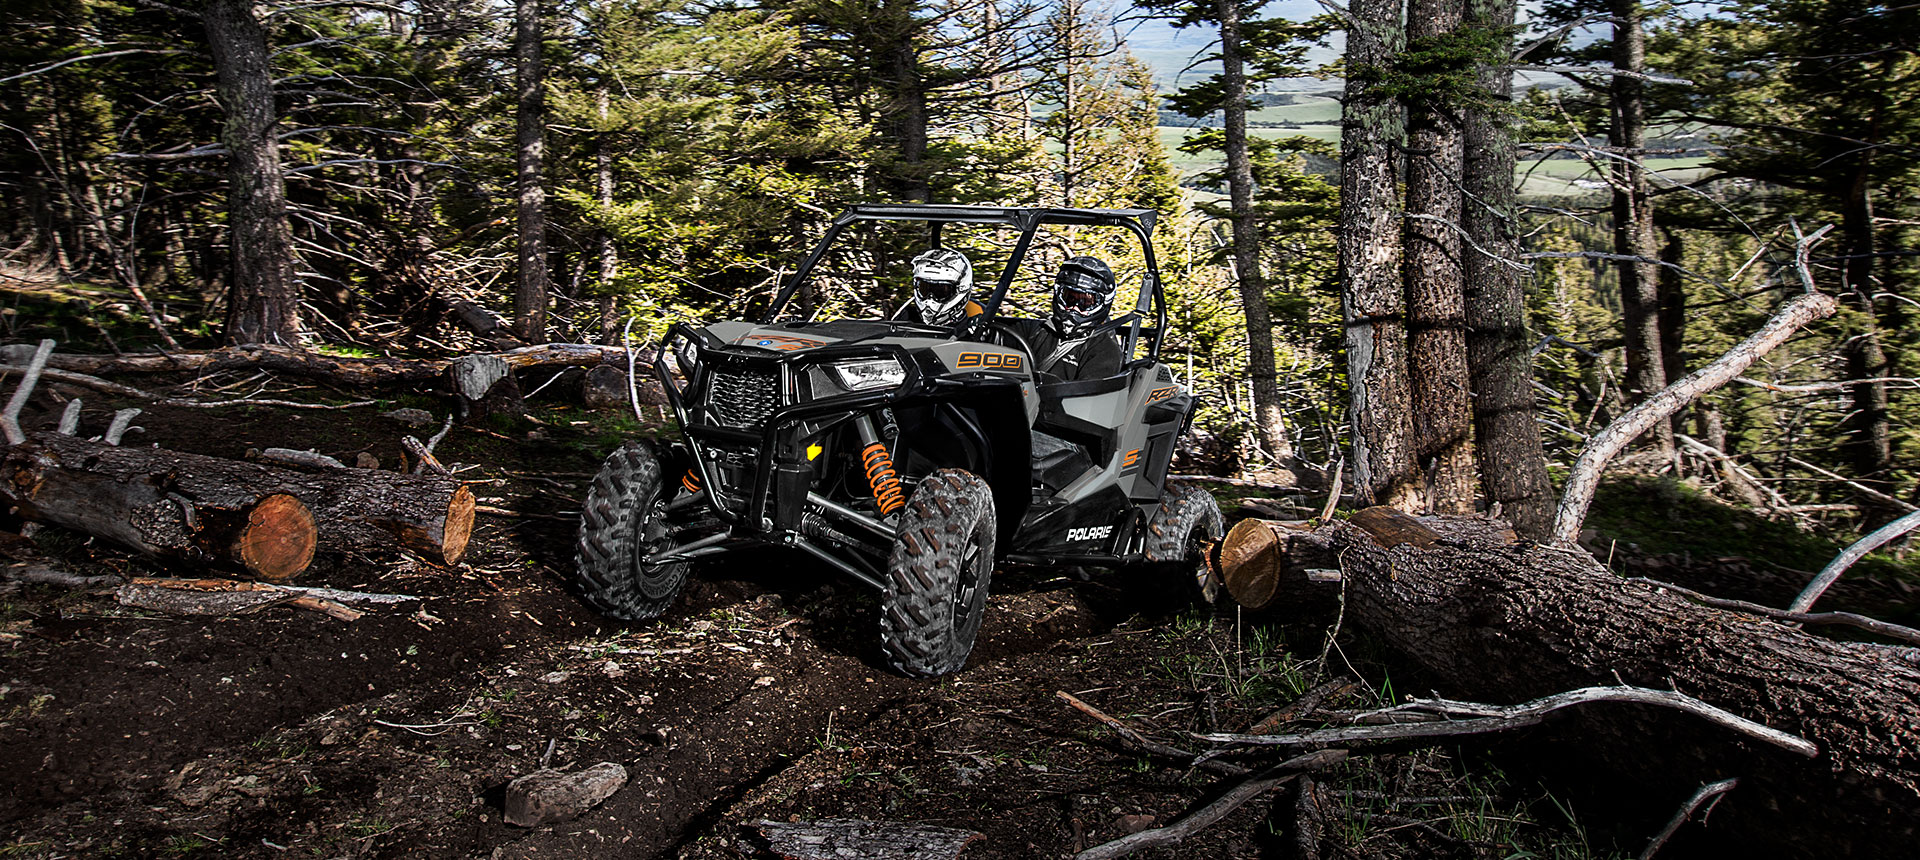 2019 Polaris RZR S 900 EPS in Park Rapids, Minnesota - Photo 2